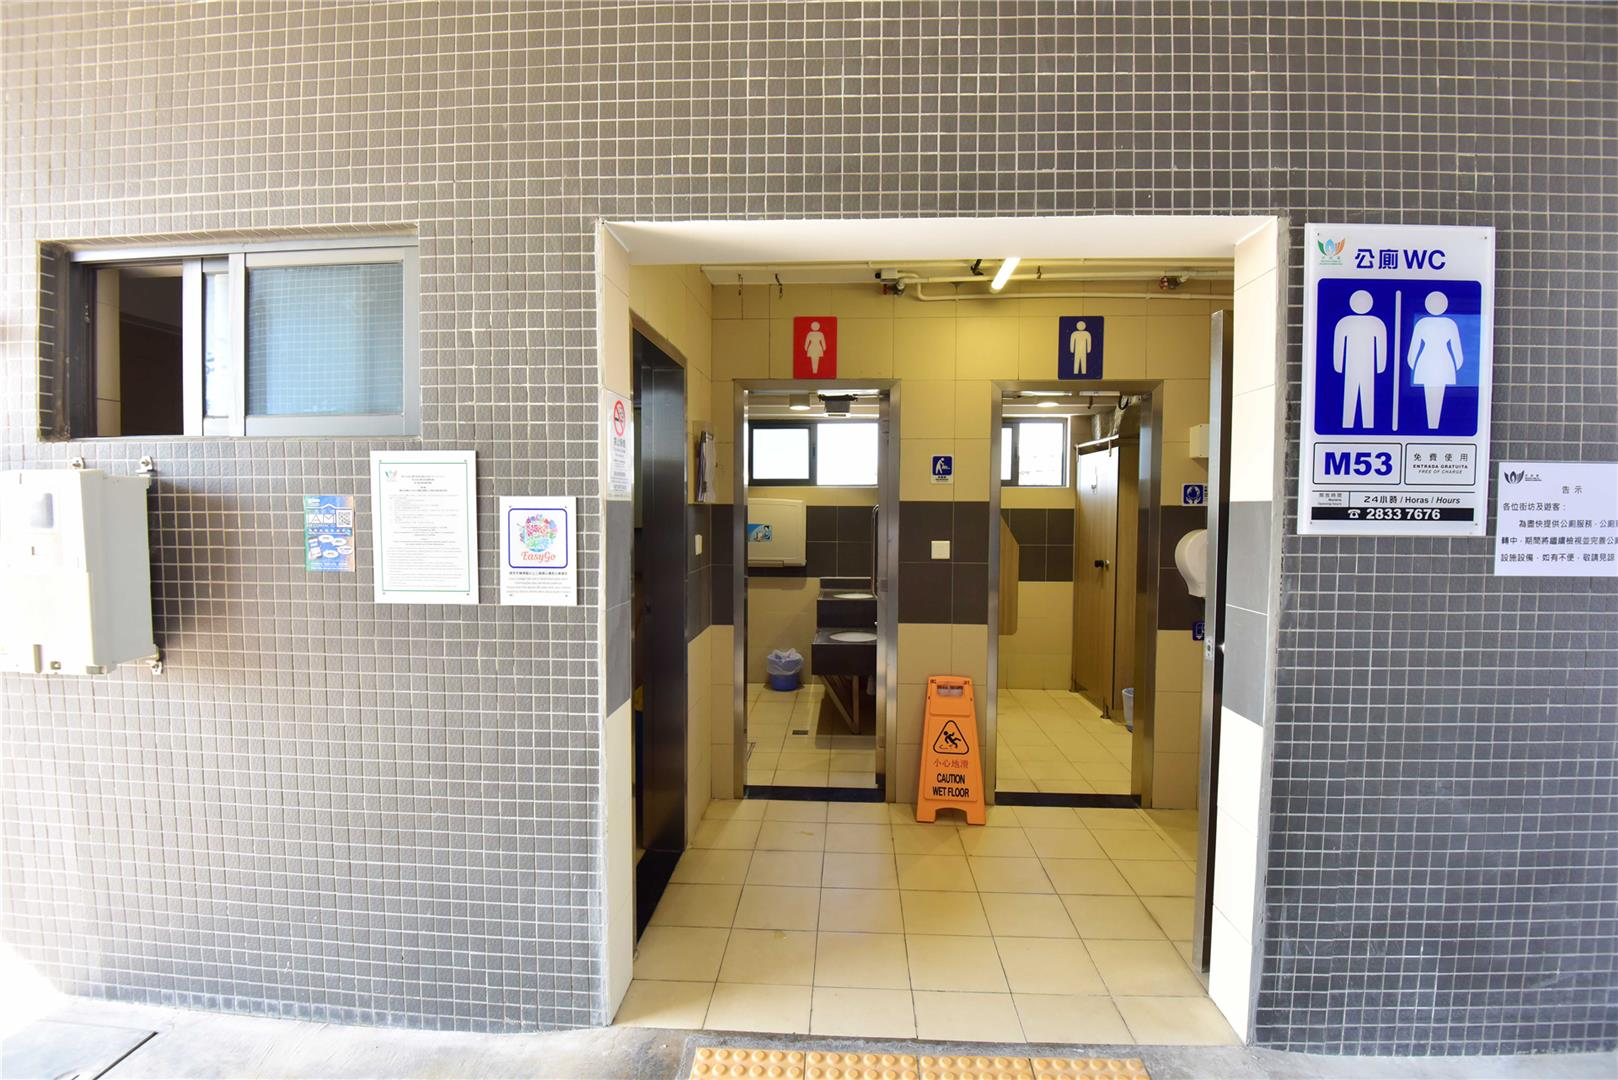 M53 Public toilet in the passenger inspection room in west district of the Hong Kong-Zhuhai-Macao Bridge